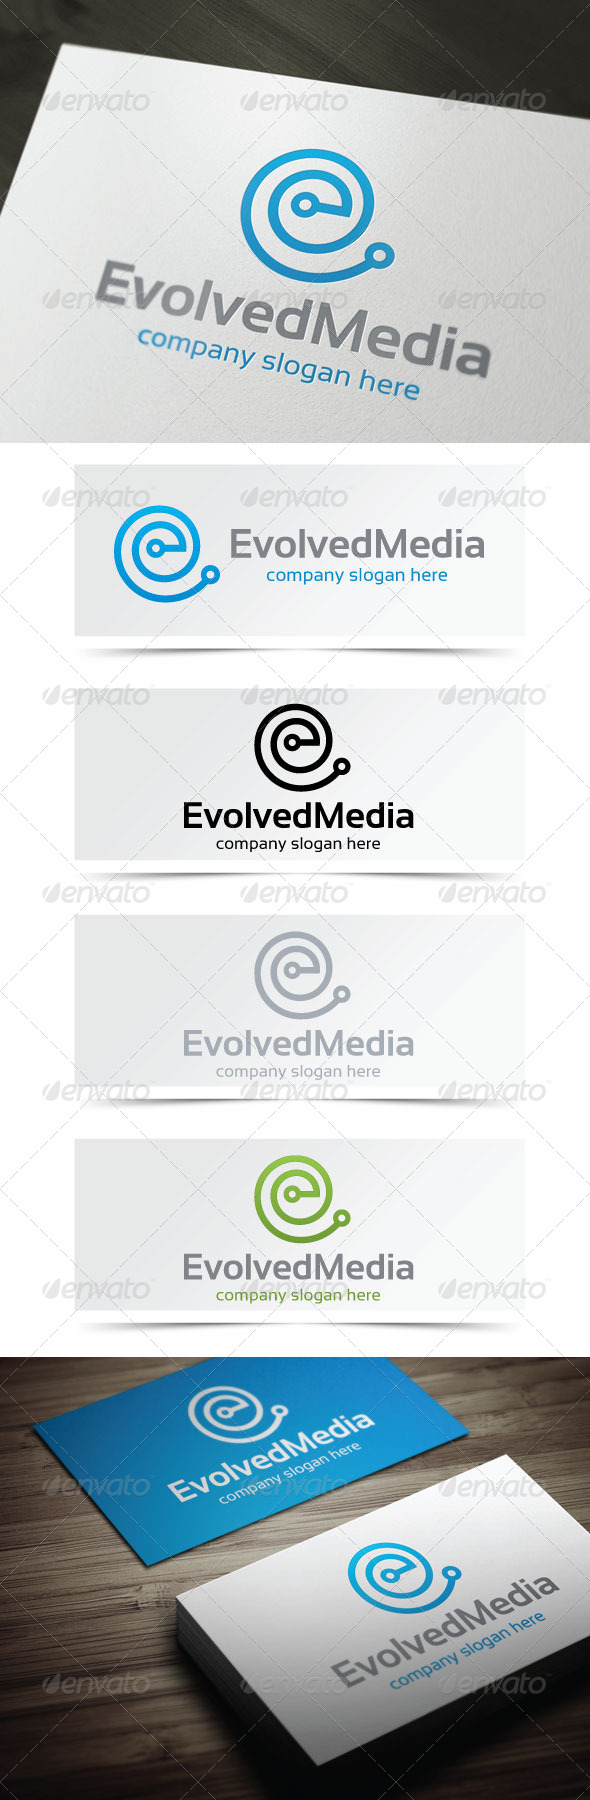 GraphicRiver Evolved Media 5020768